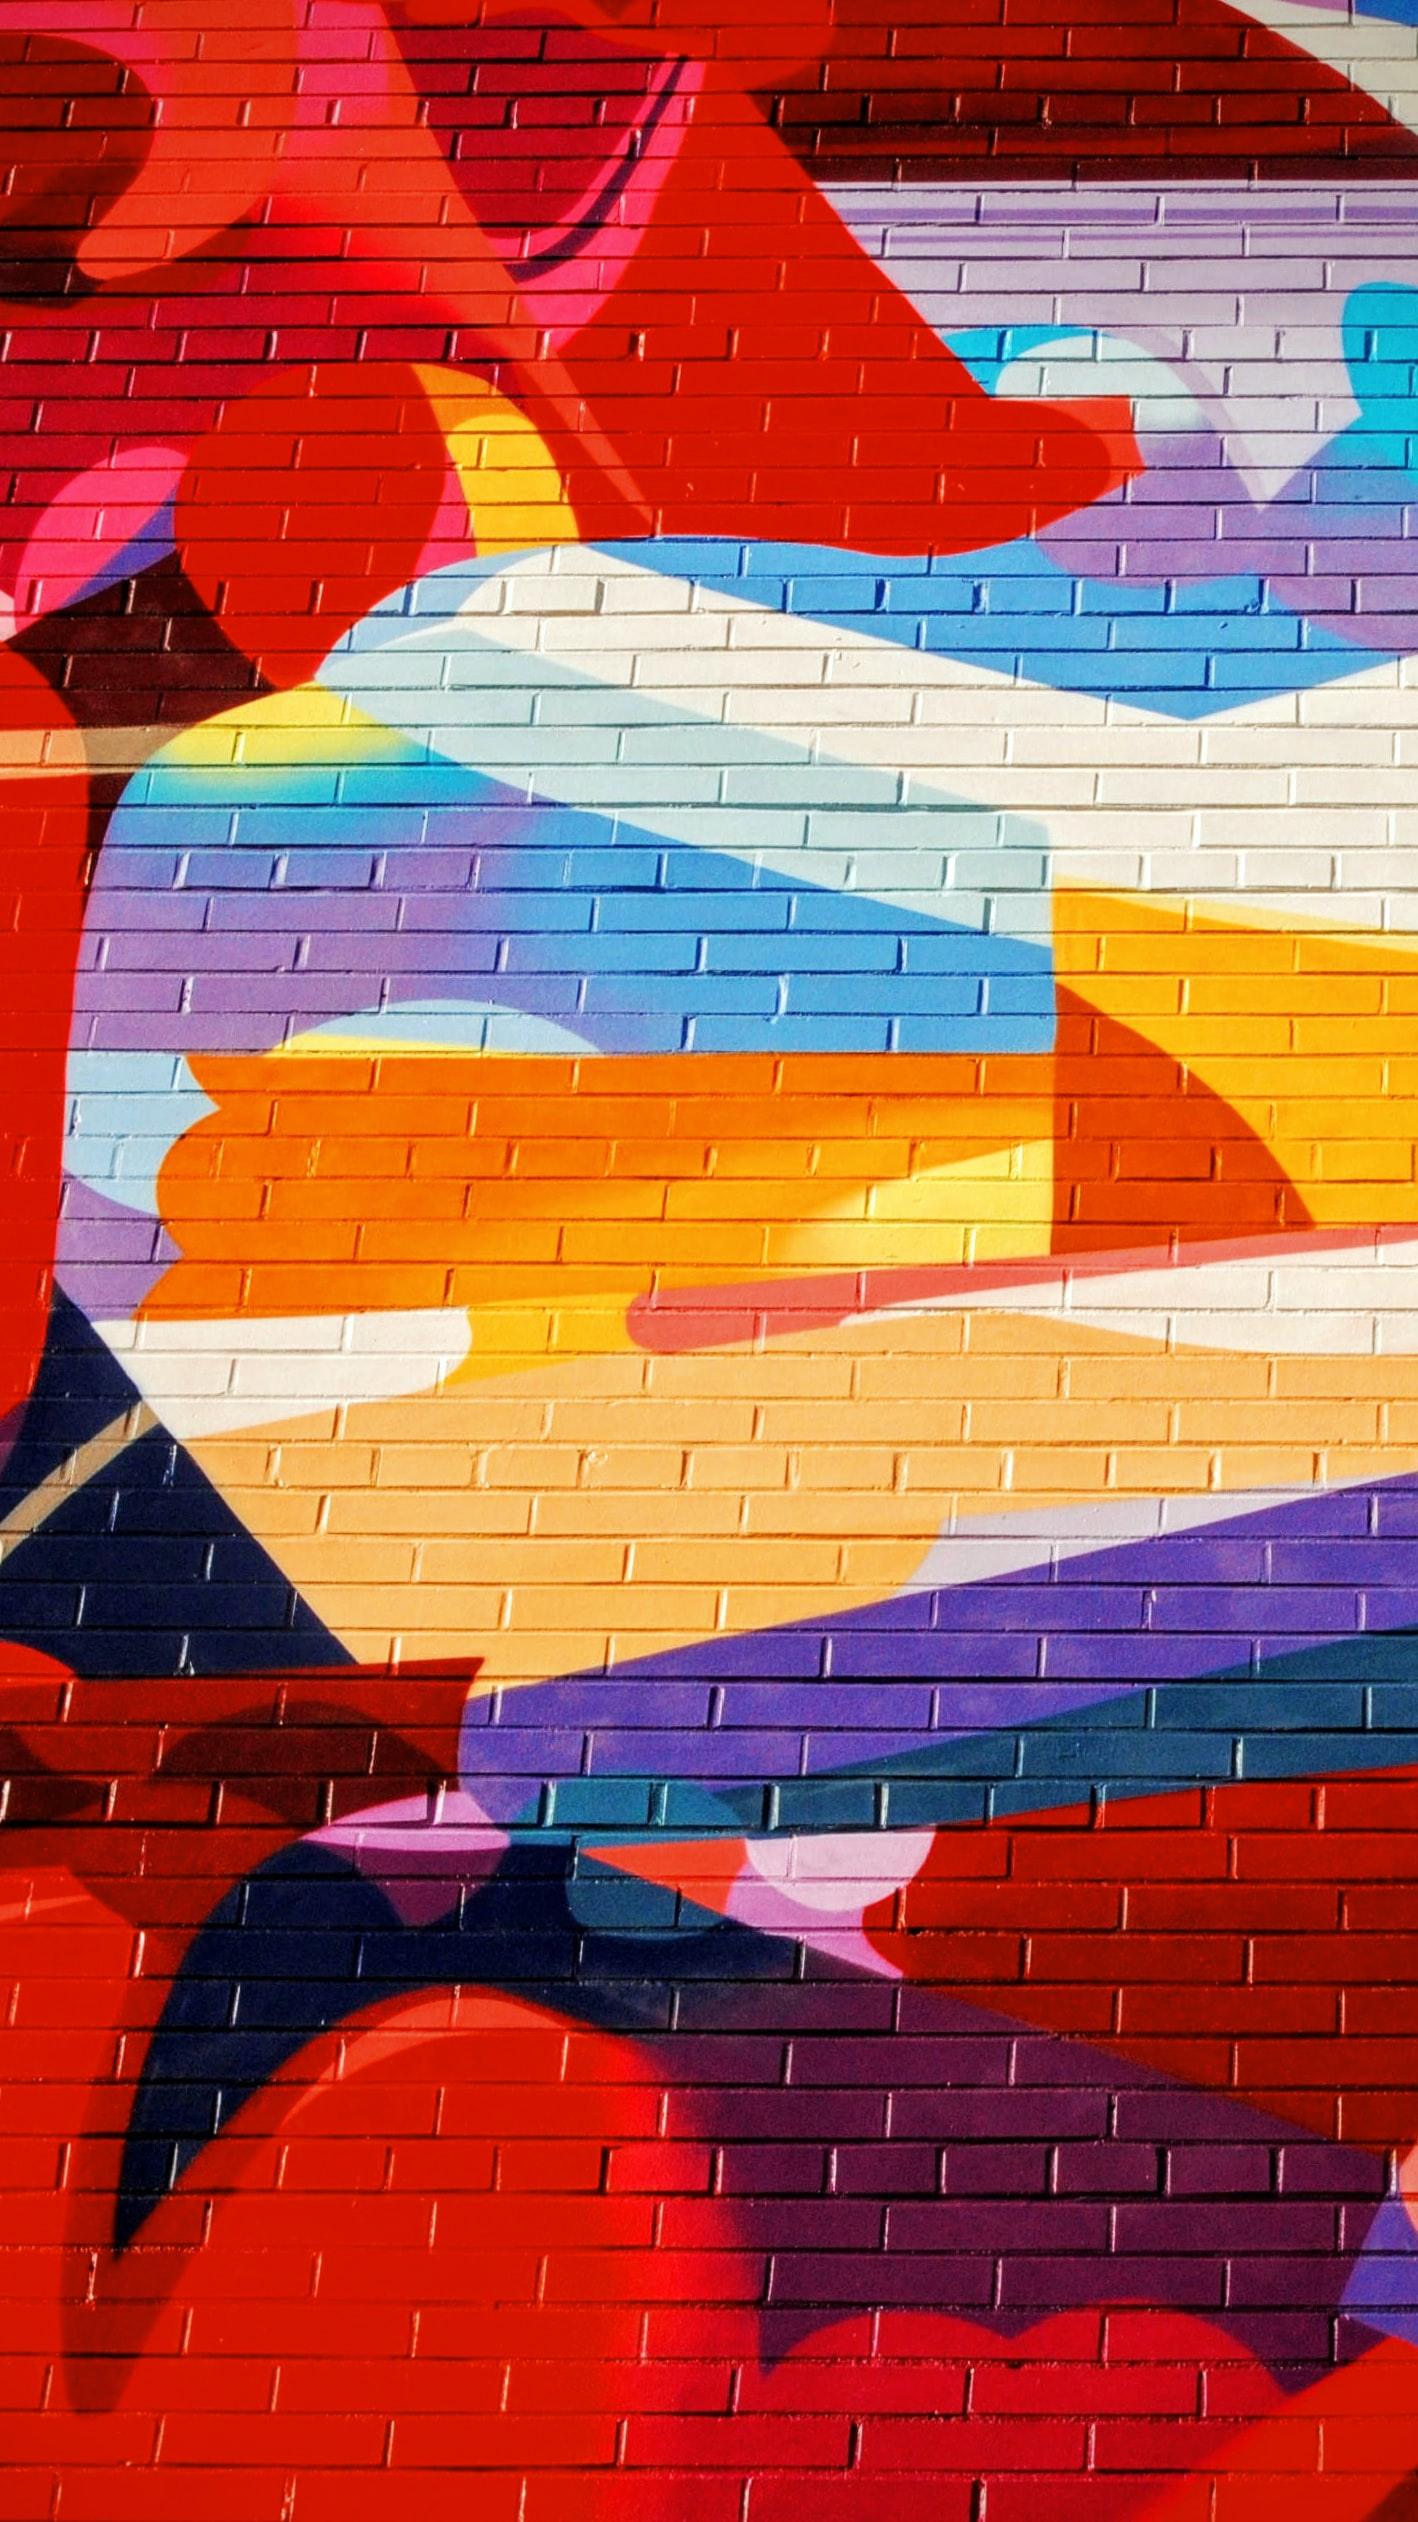 multicolored mural painting